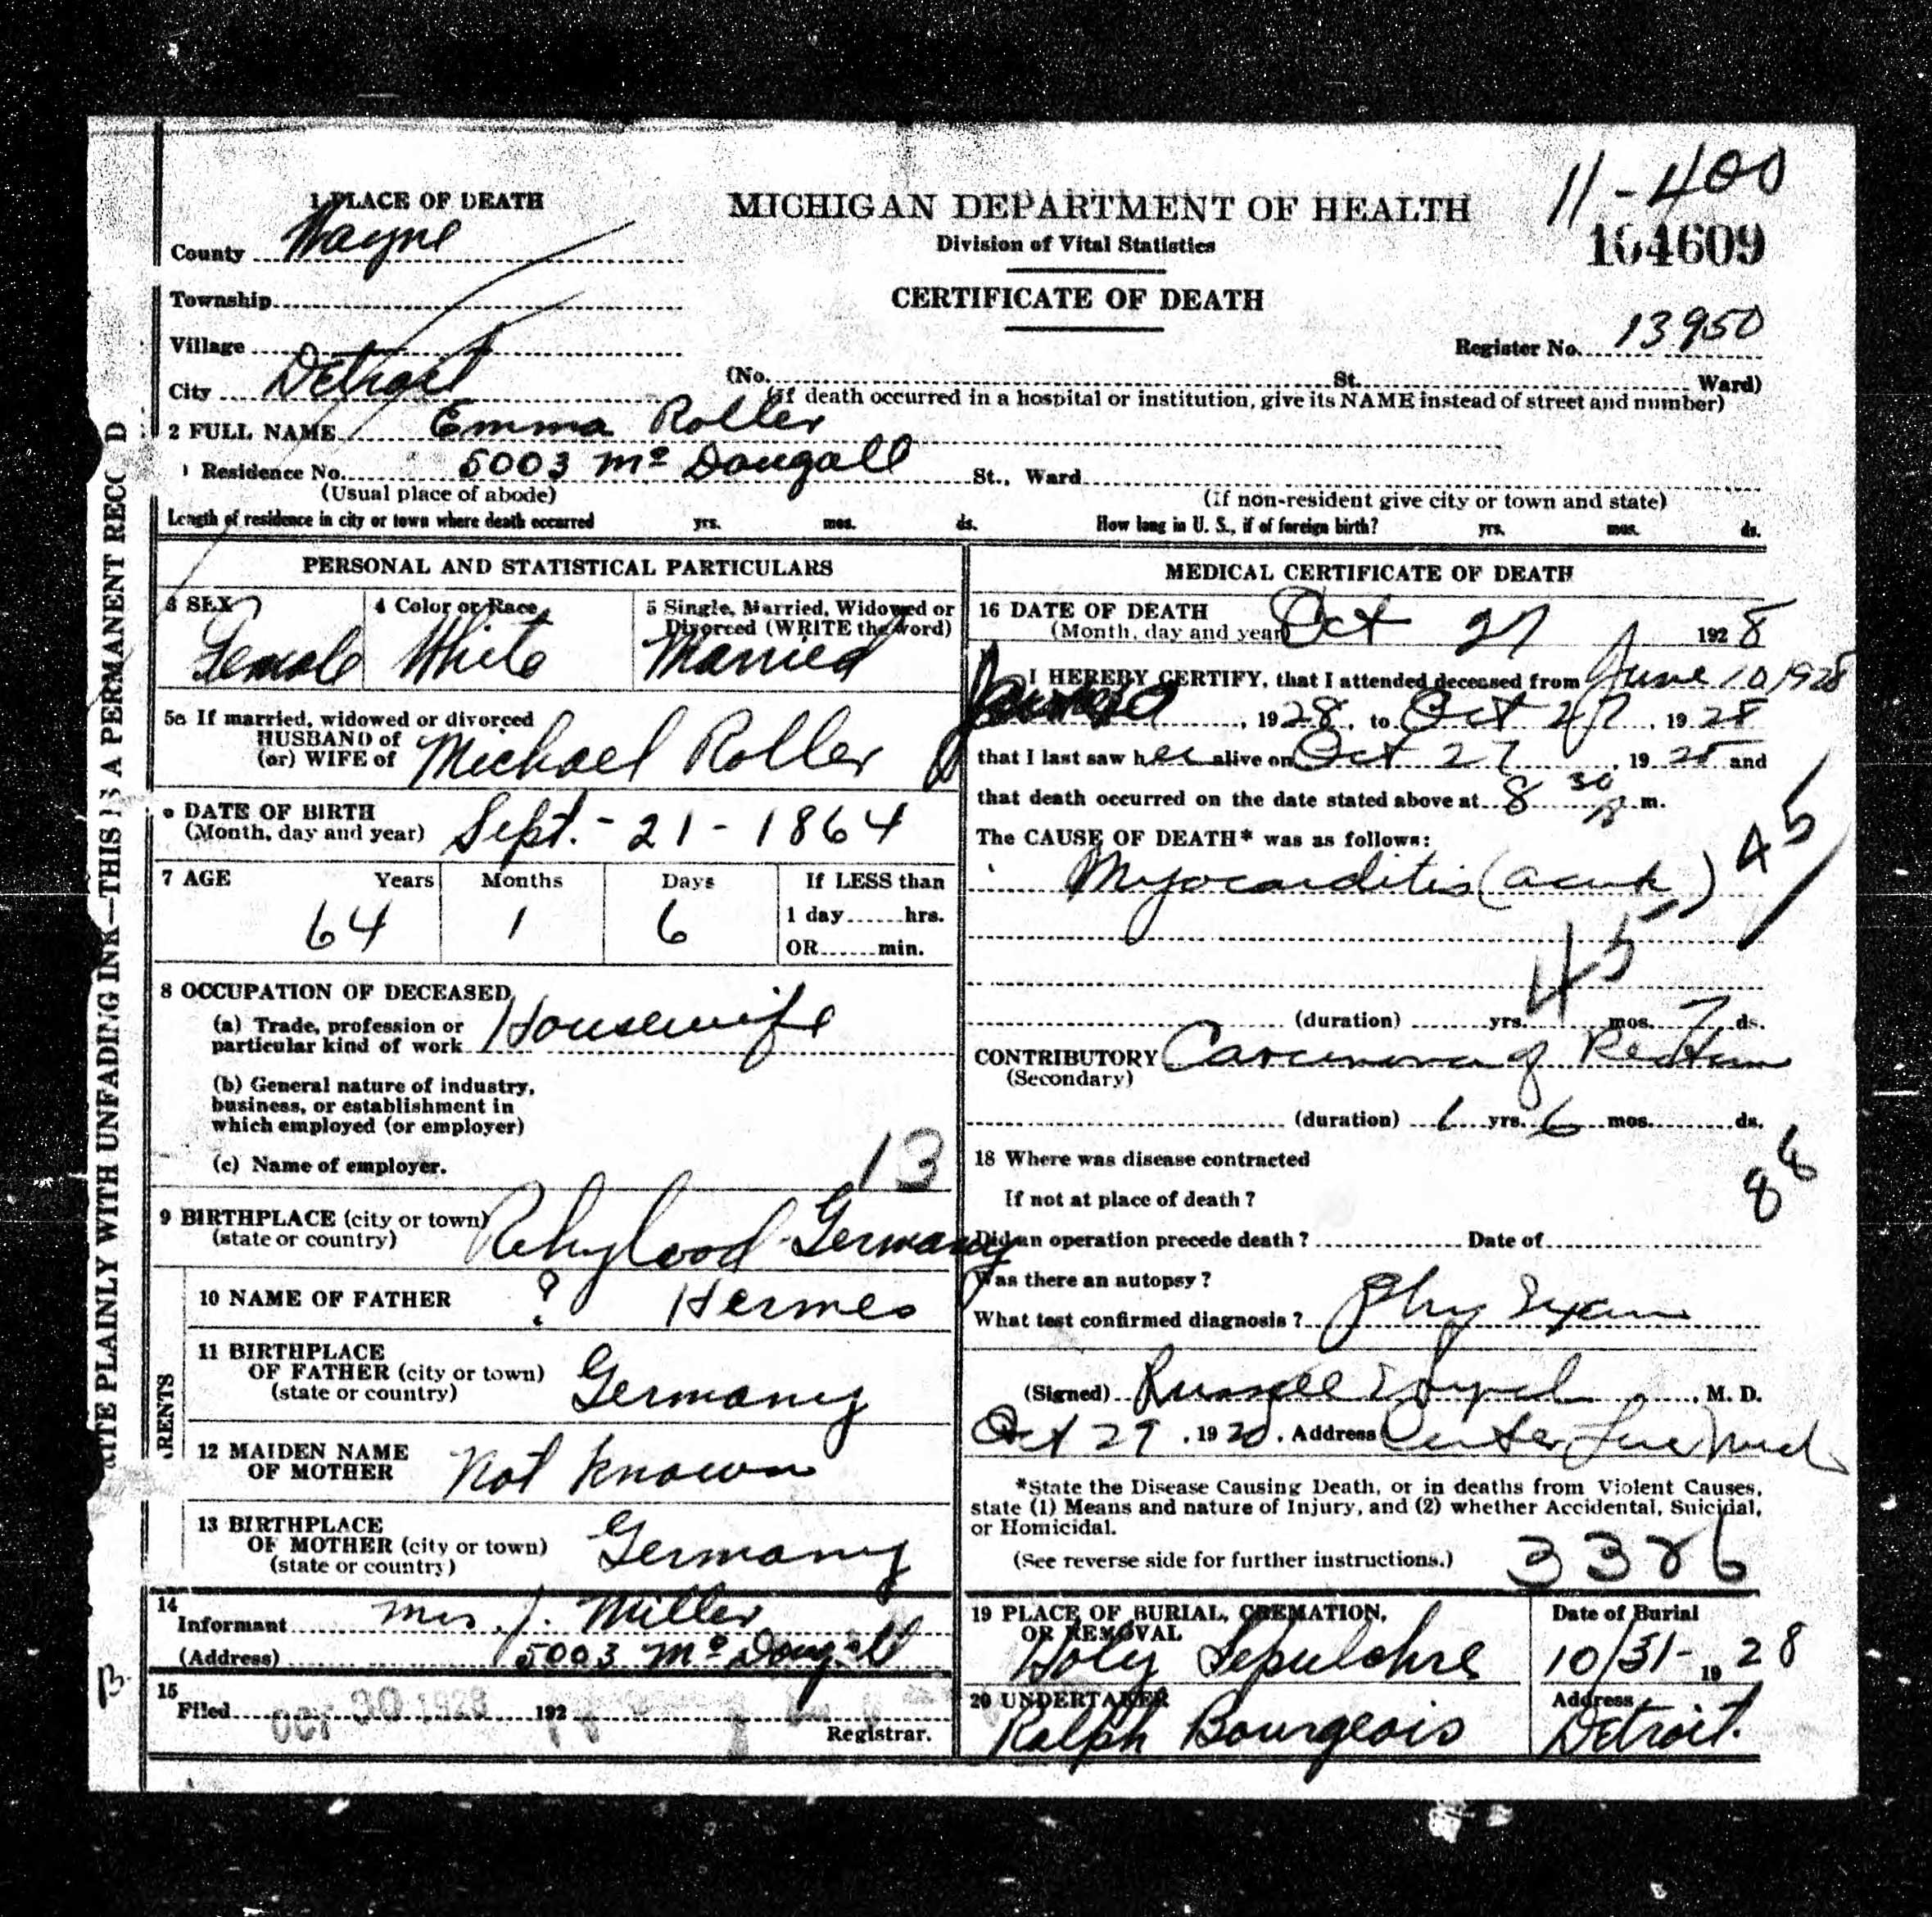 Awesome photos of birth certificate in detroit michigan business sources from birth certificate in detroit michigan image source robertyagley aiddatafo Choice Image